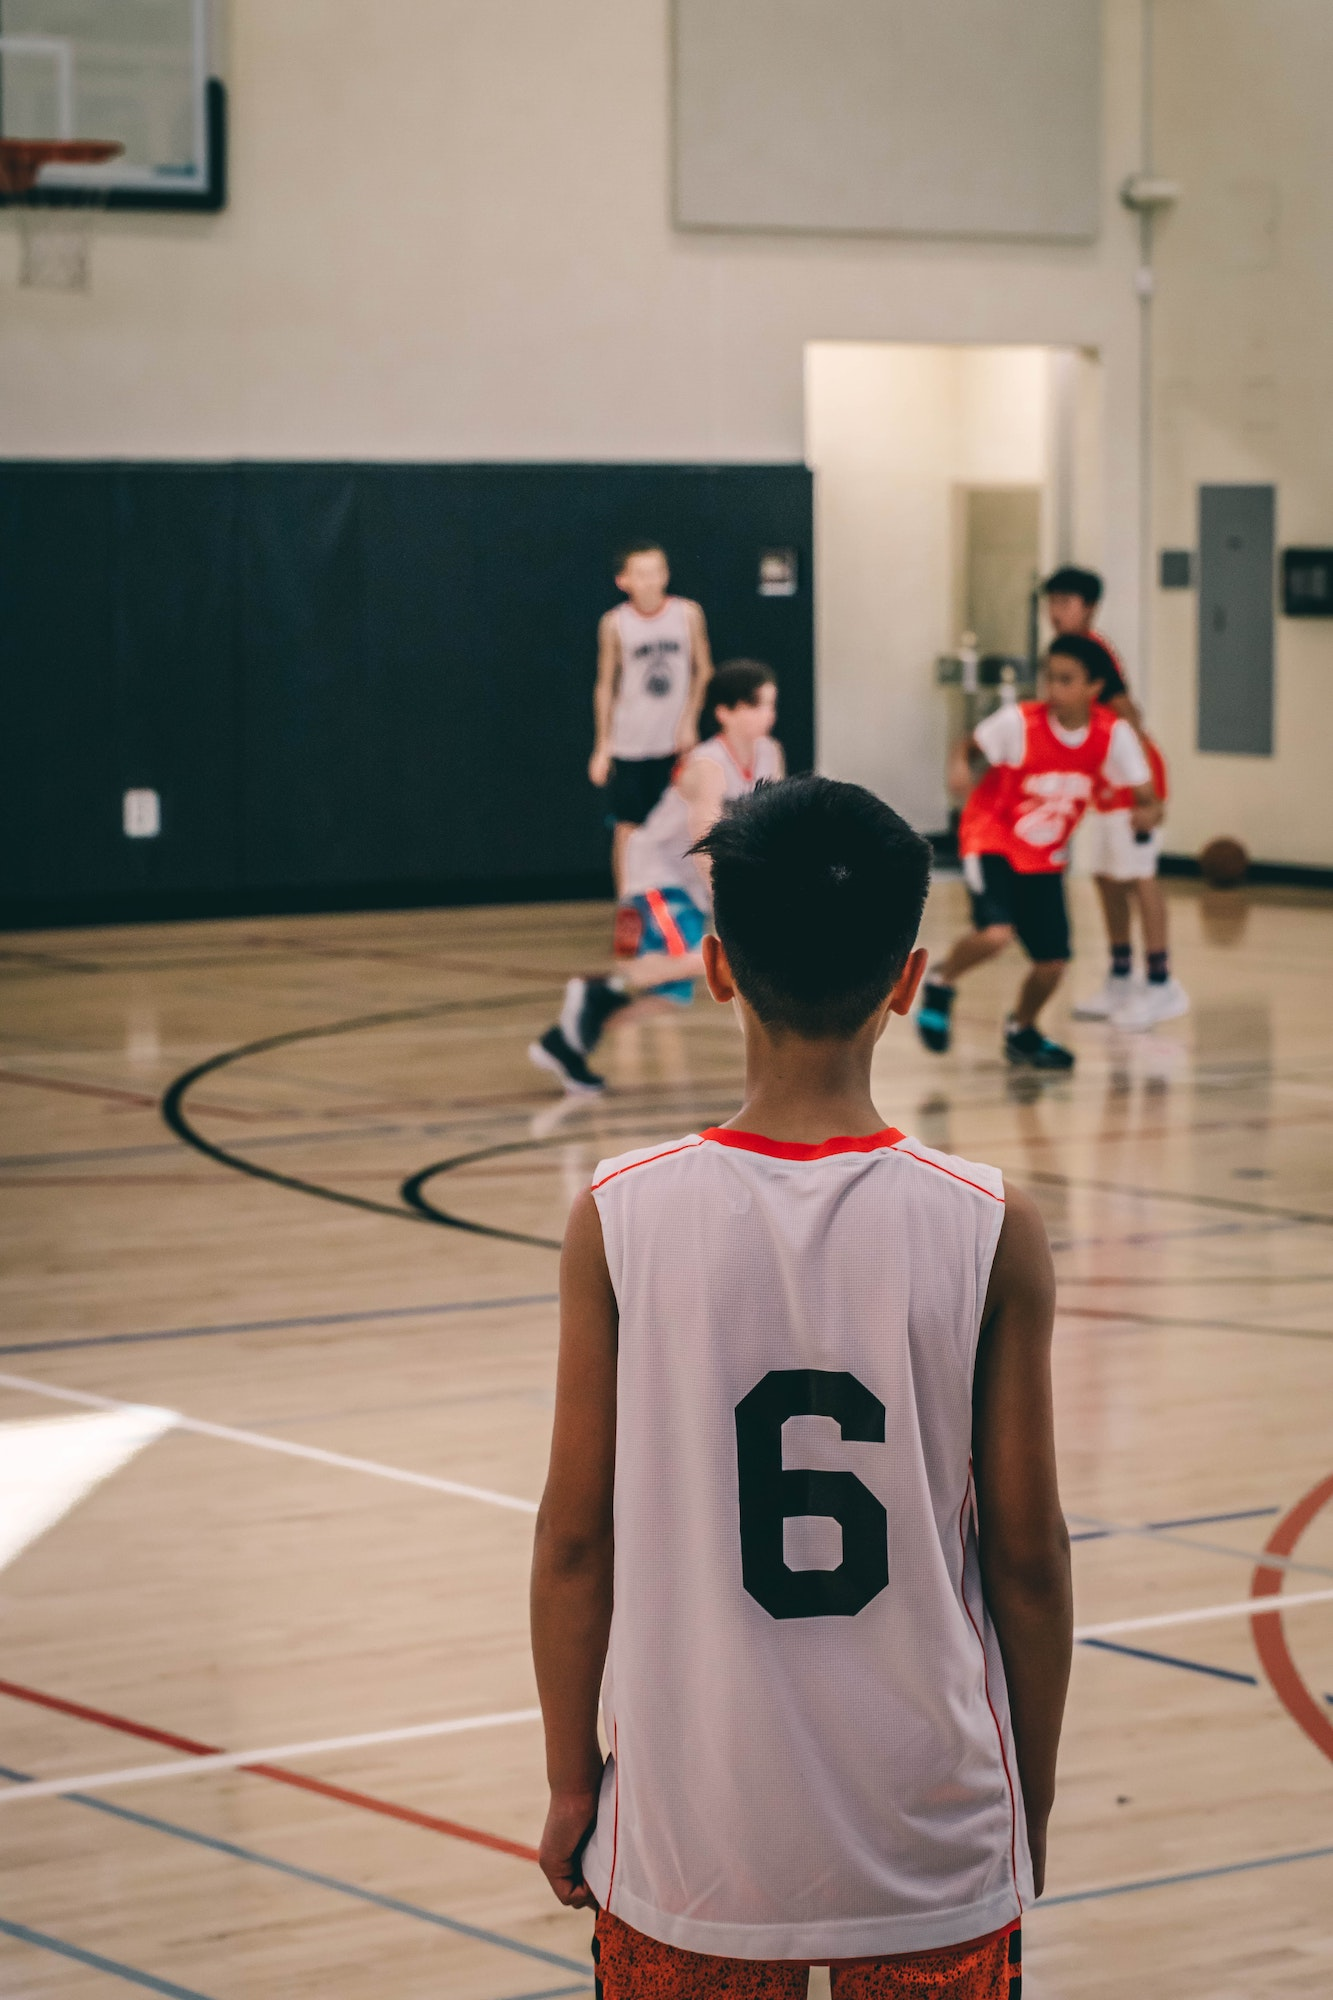 sports and camp physical - teen boys on basketball court